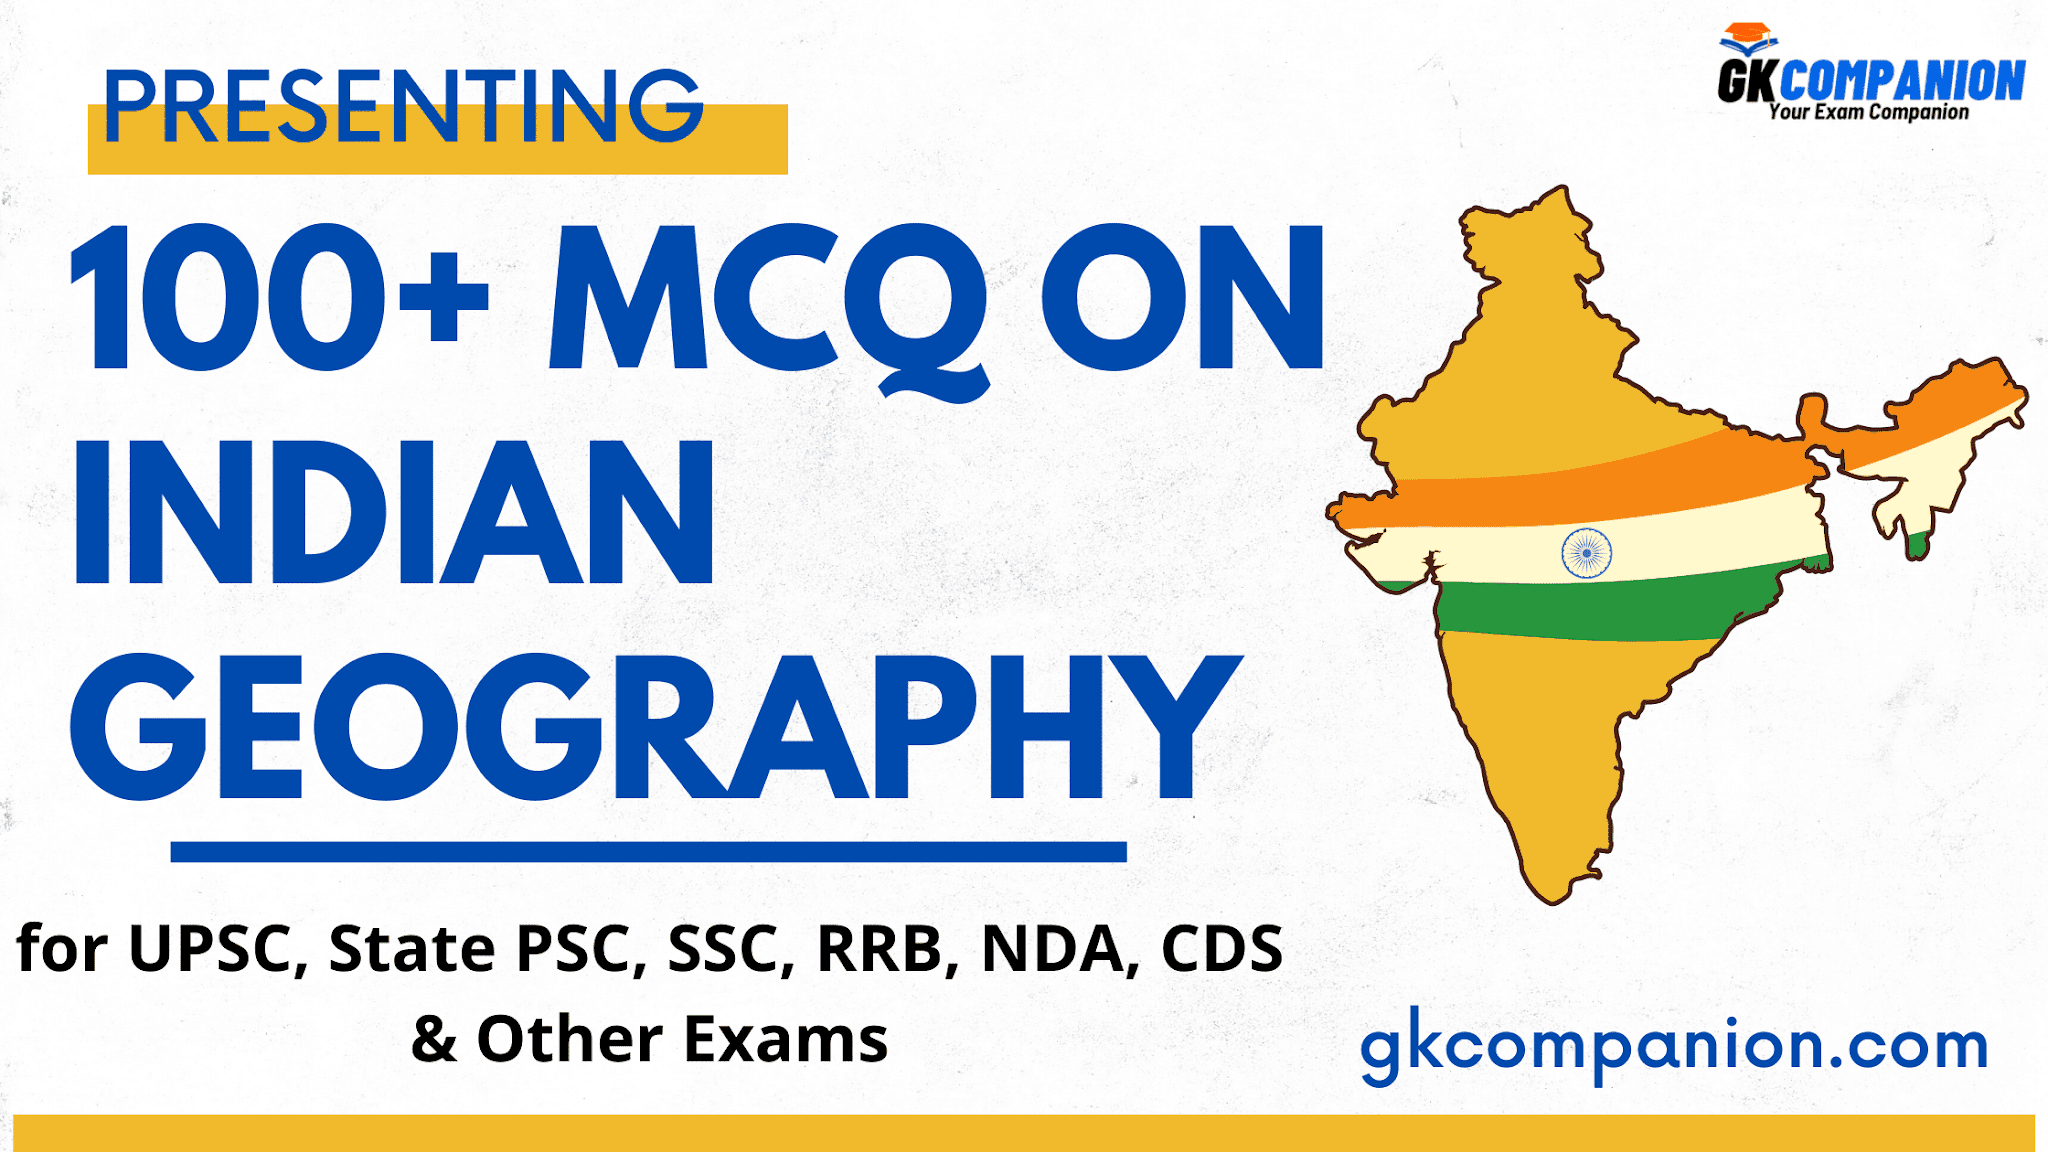 100+ MCQs on Indian Geography